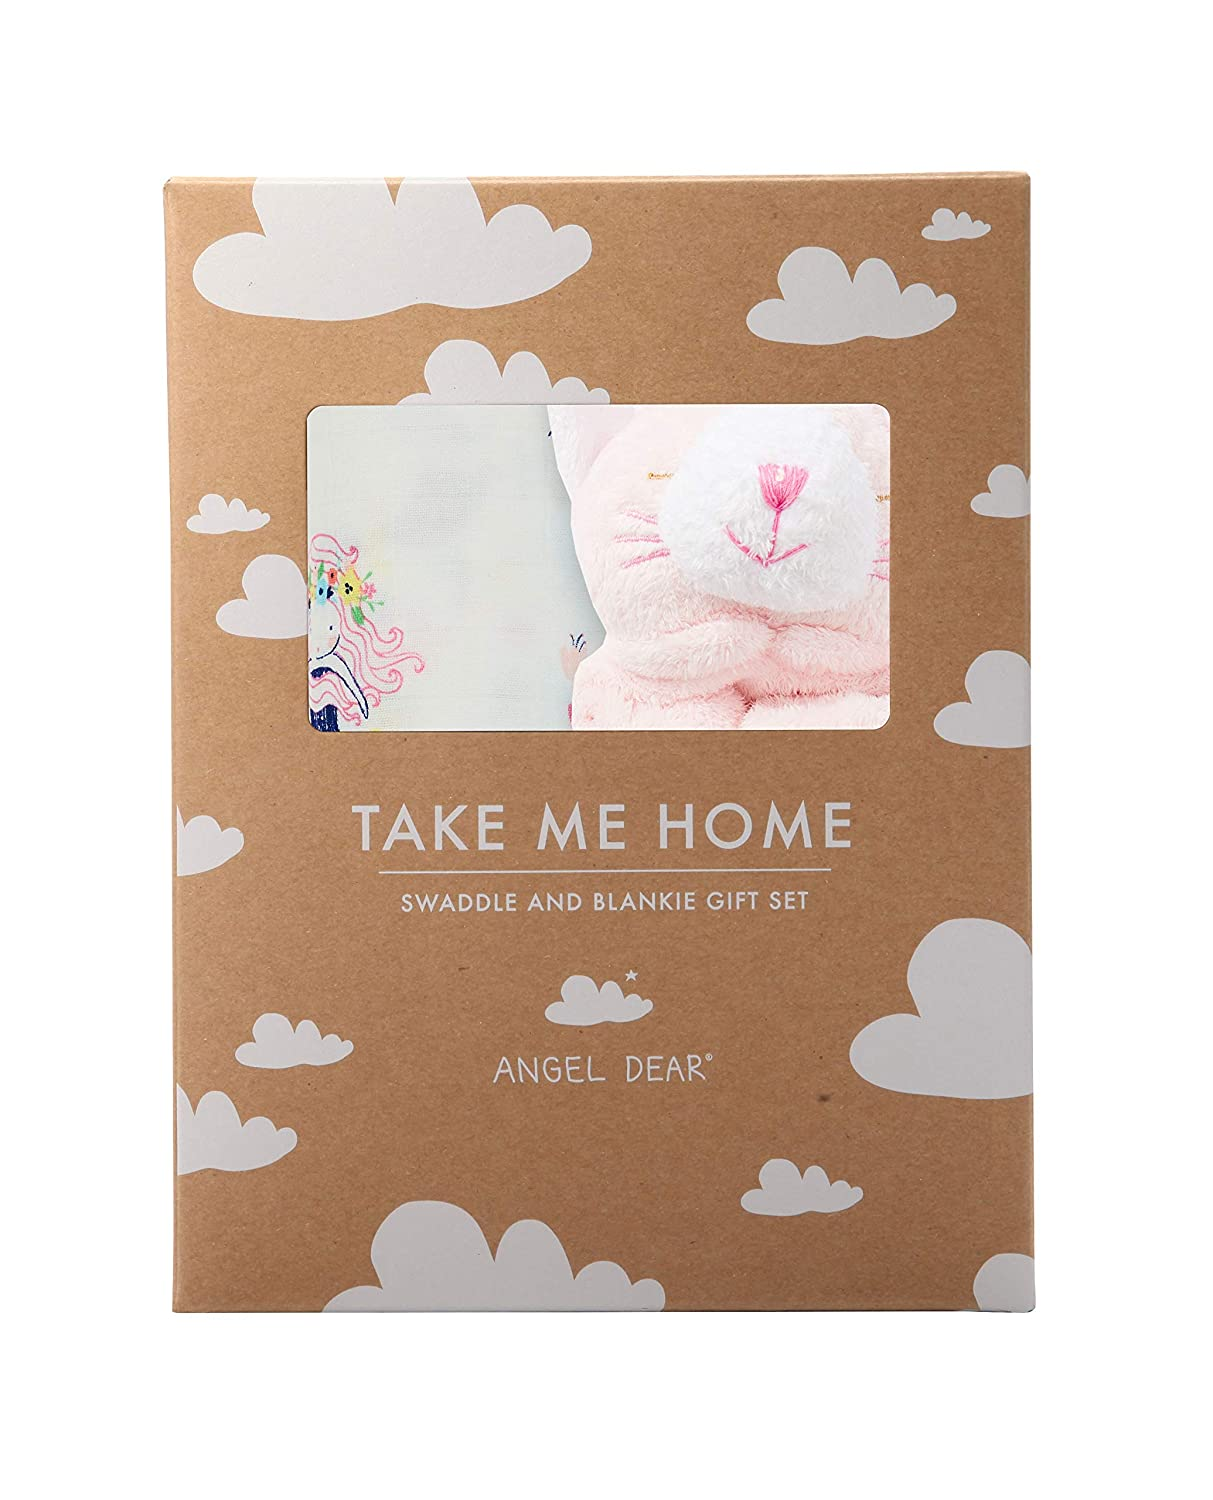 Angel Dear Swaddle and Blankie Gift Set, Mermaid and Friends with Pink Kitty